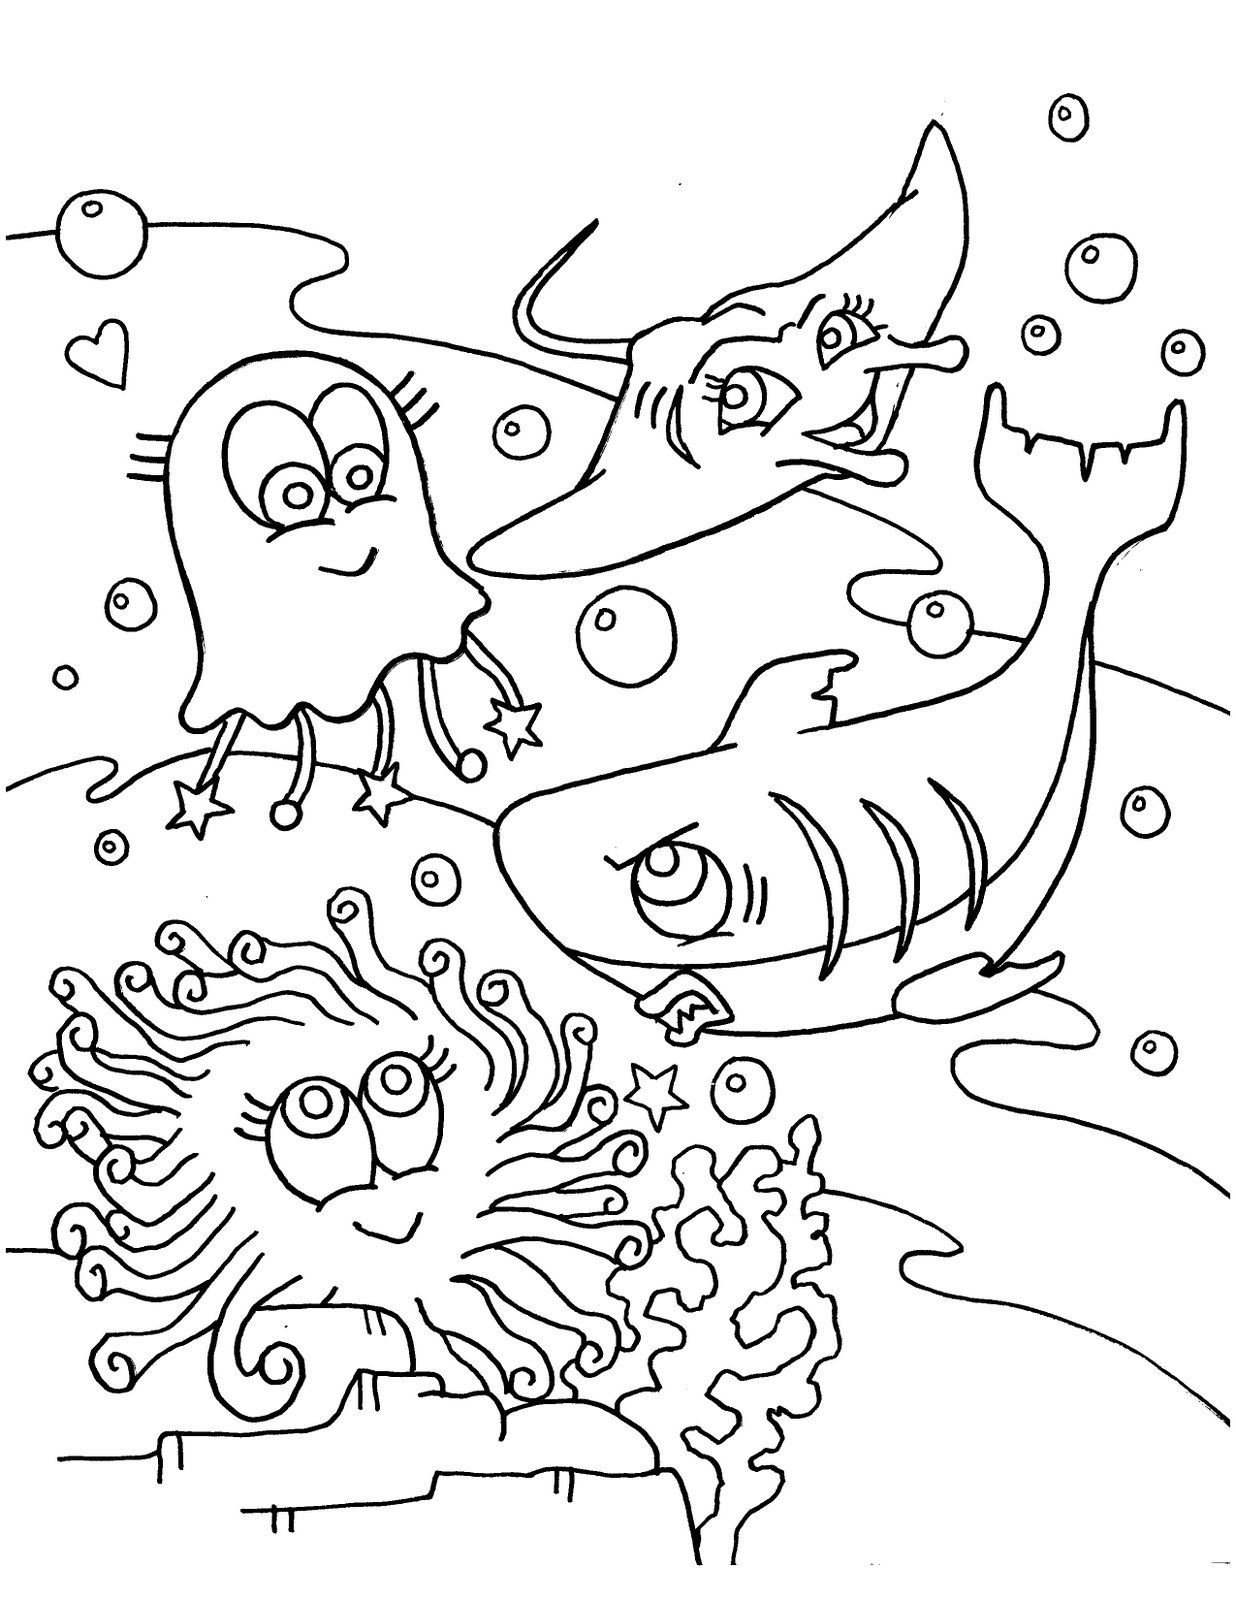 Explore Animal Coloring Pages And More Contains Forest Strong Large Animals